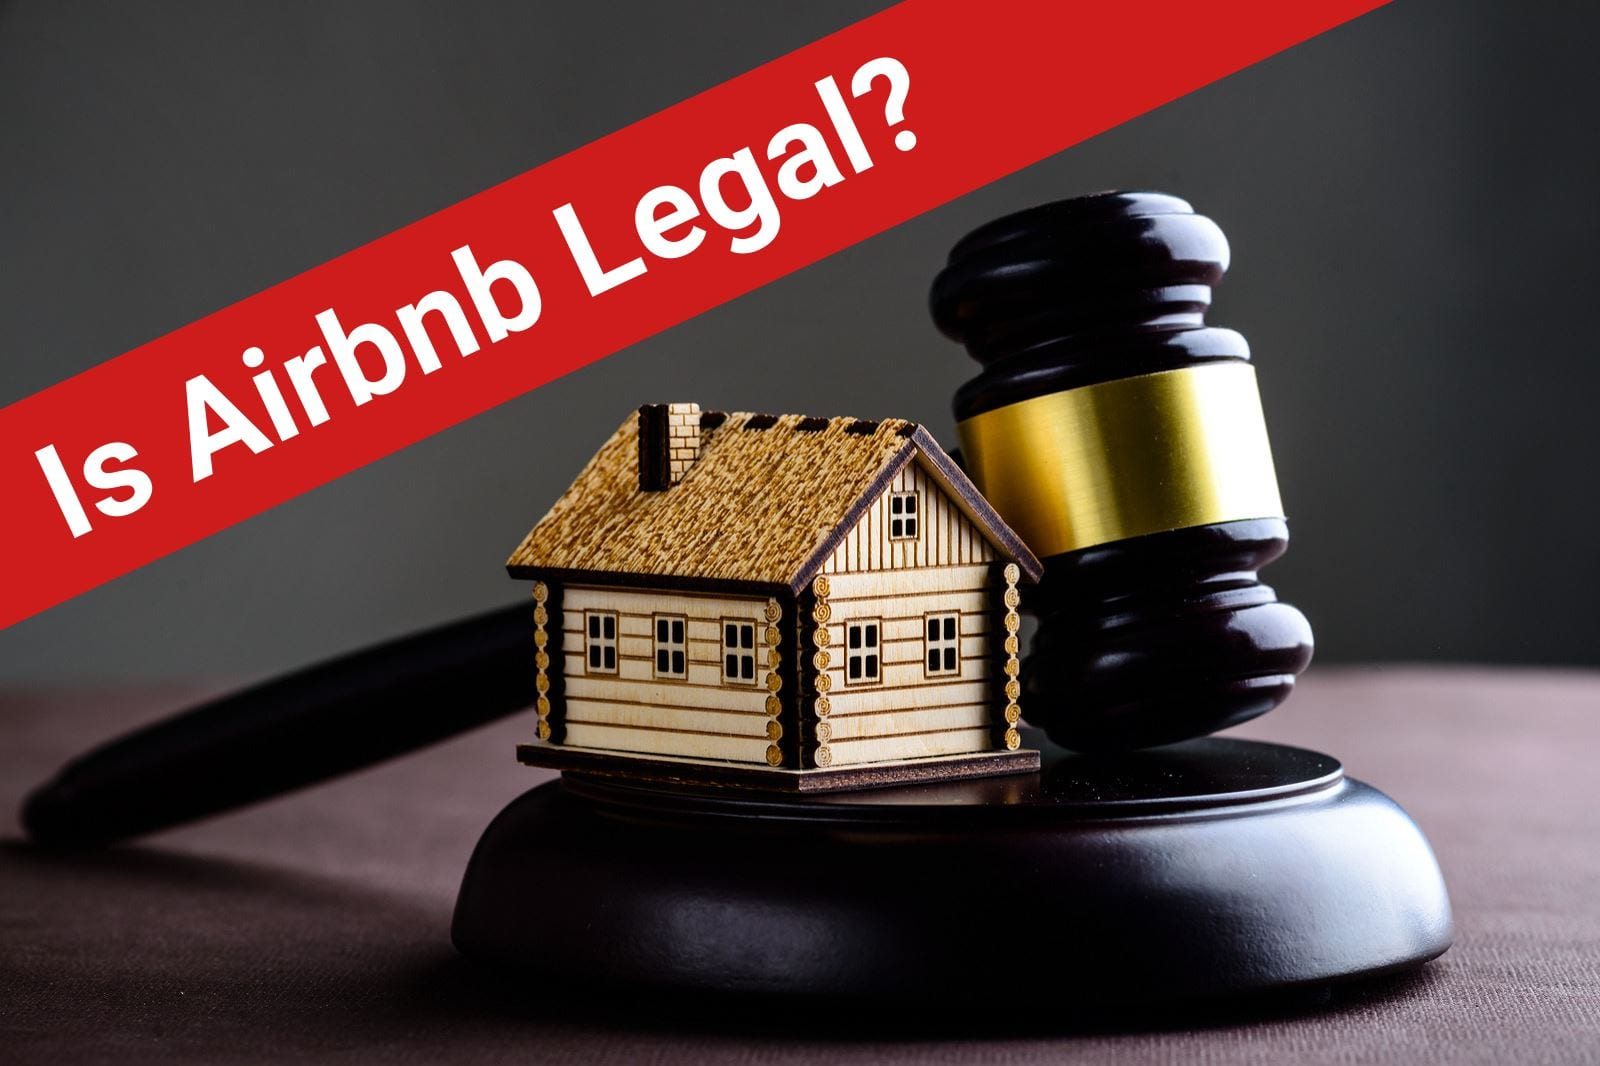 5 Cities Where Airbnb Is Illegal in 2019   Mashvisor